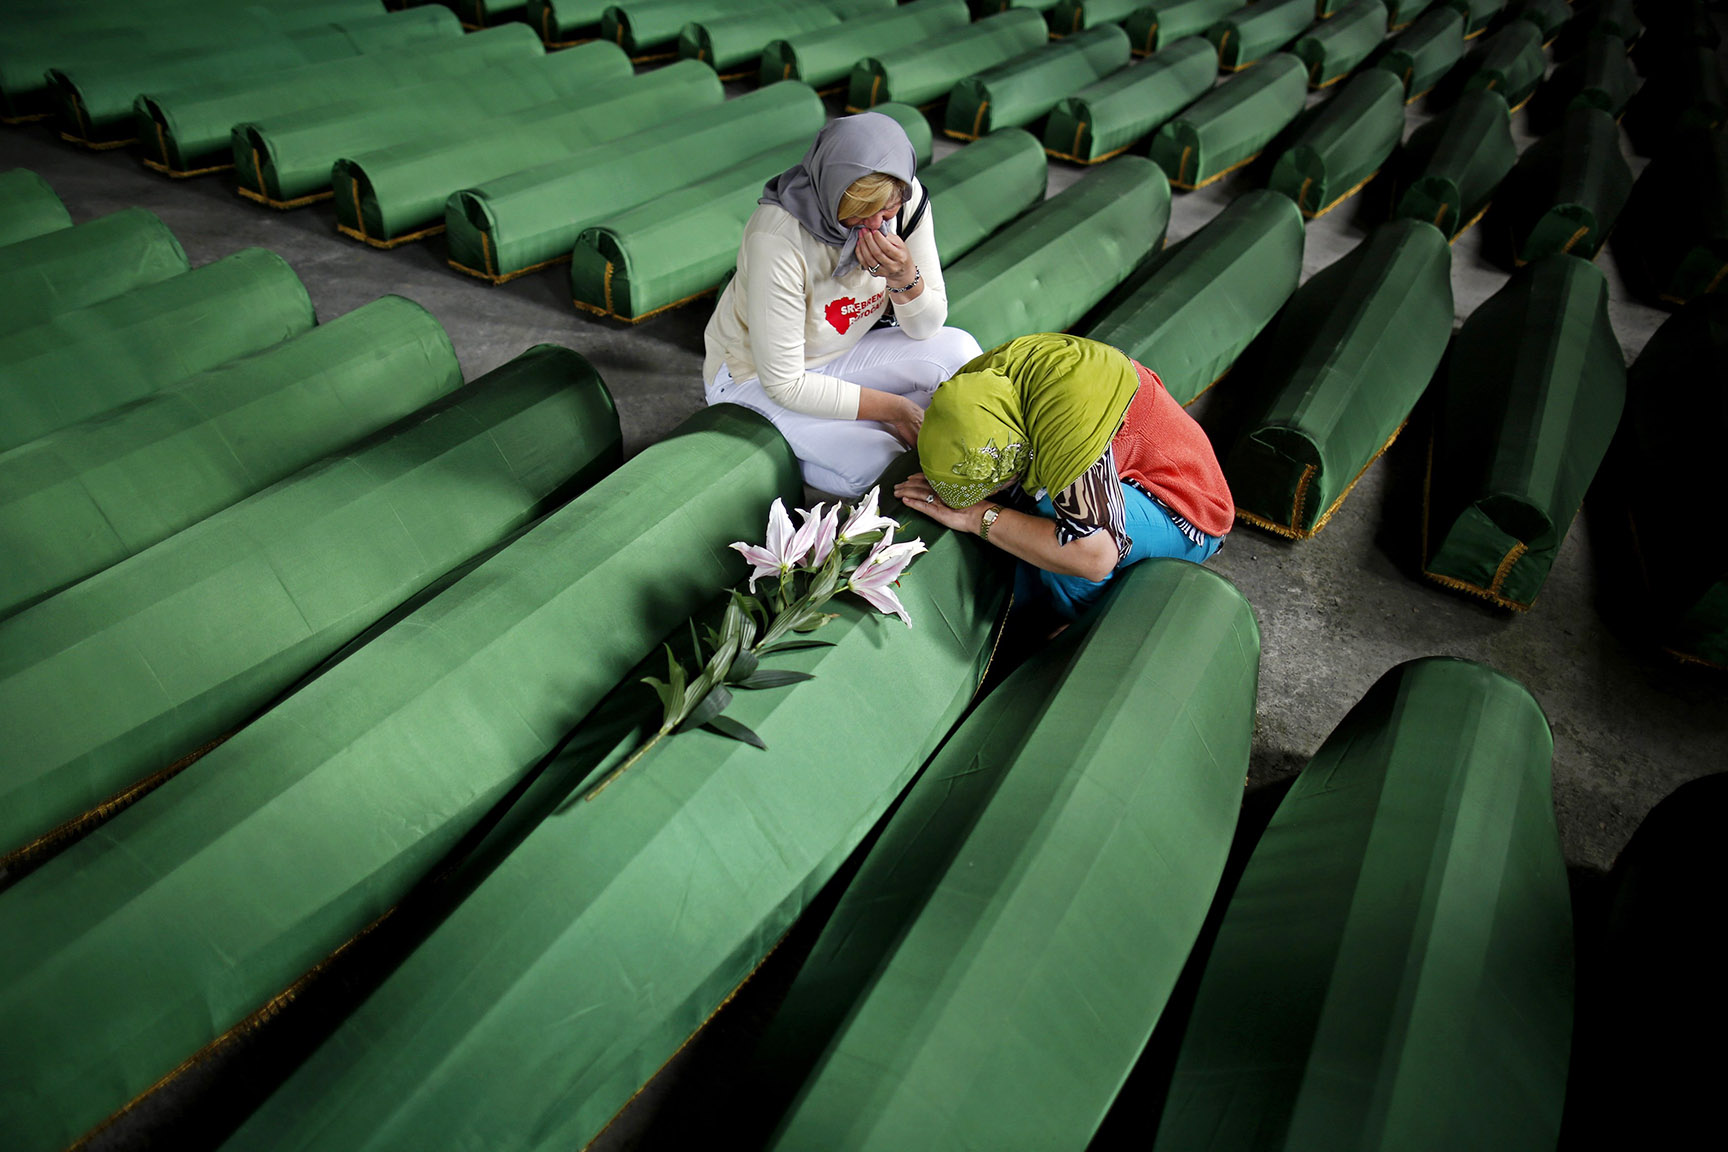 Bosnian Muslim women cry near the coffin of their relative, which is one of the 175 coffins of newly identified victims from the 1995 Srebrenica massacre, in Potocari Memorial Center, near Srebrenica